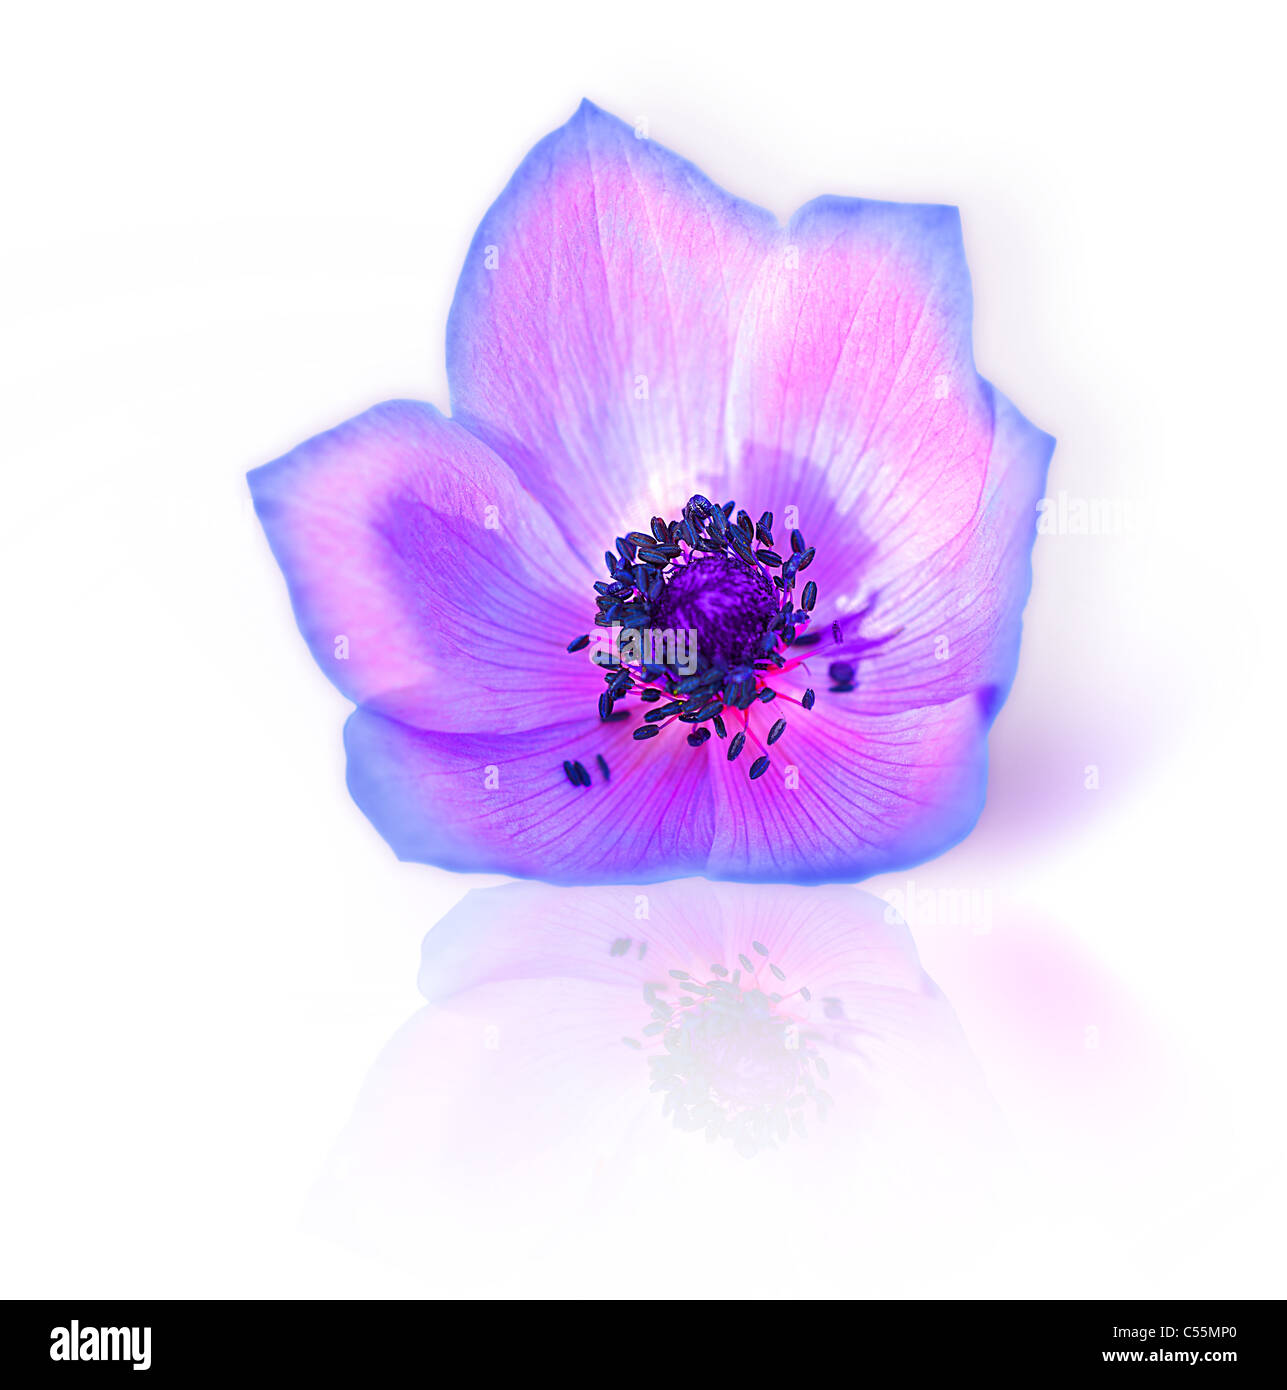 Macro of fresh spring purple wild flower head isolated on white background - Stock Image